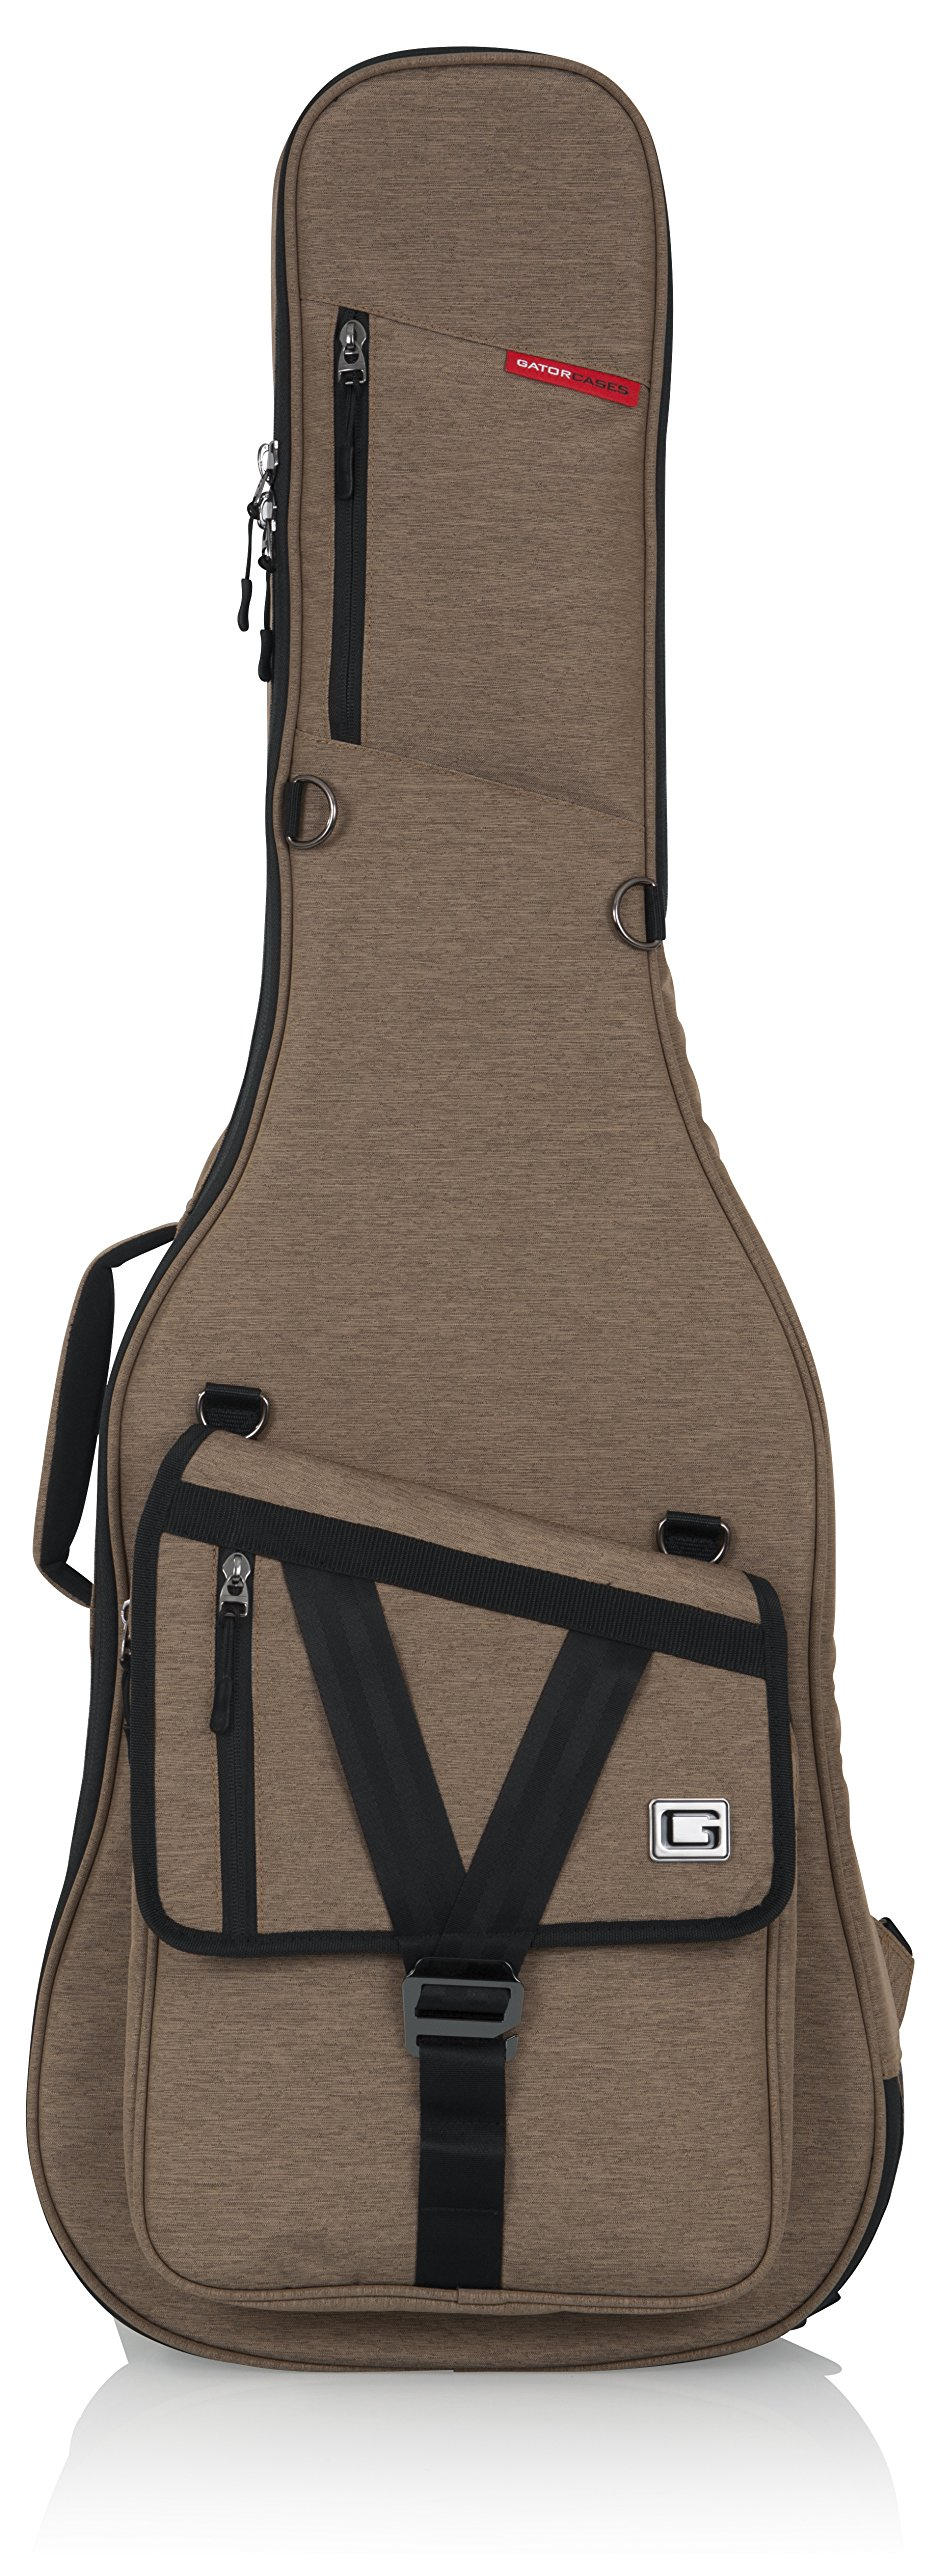 Gator Cases Transit Series Electric Guitar Gig Bag; Tan Exterior (GT-ELECTRIC-TAN) by Gator